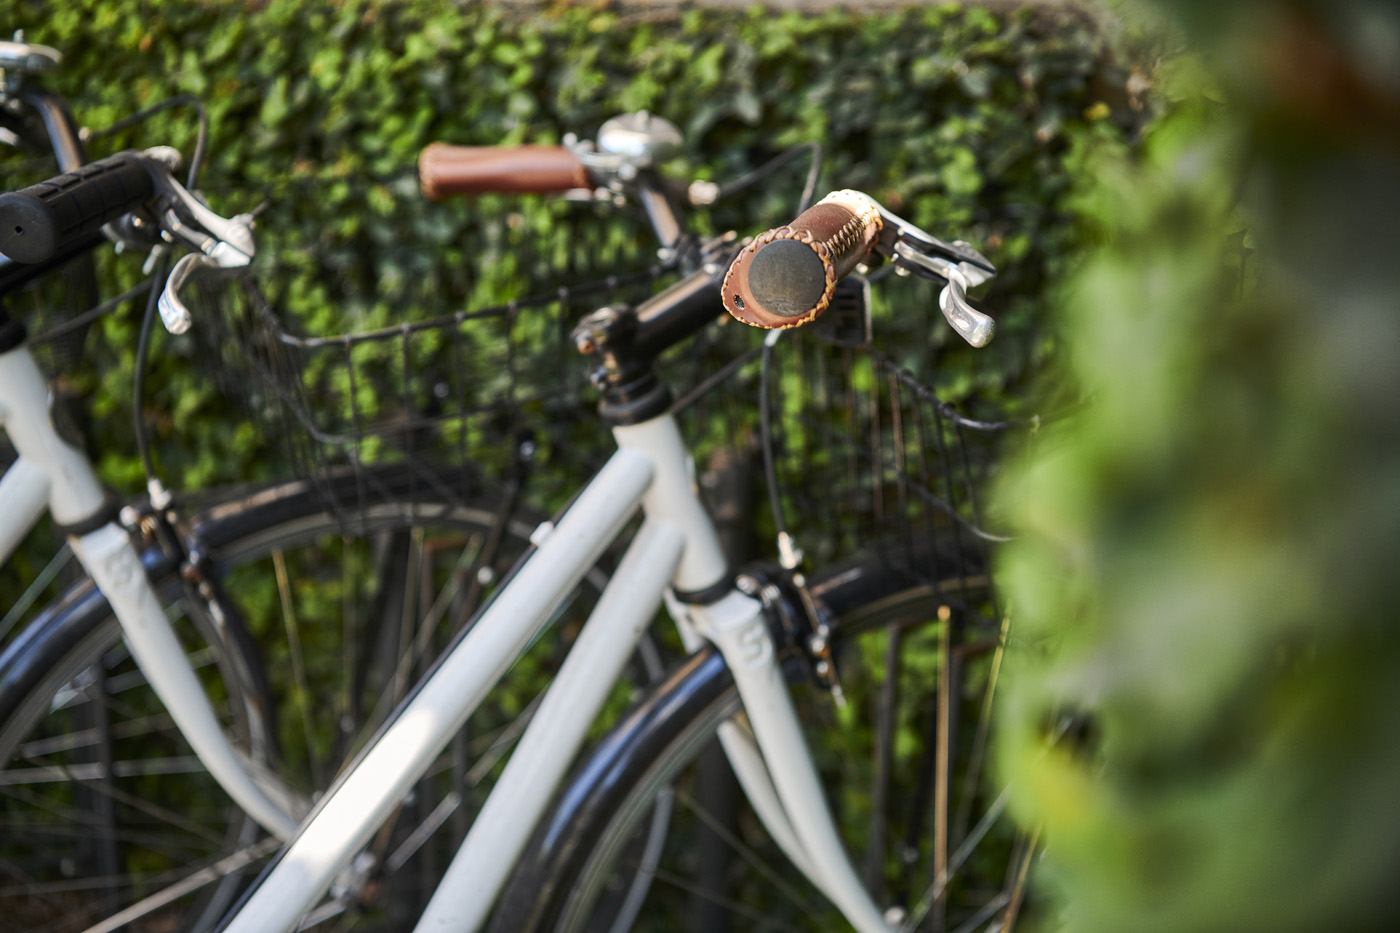 A white bike with brown leather handles next to some shrubbery